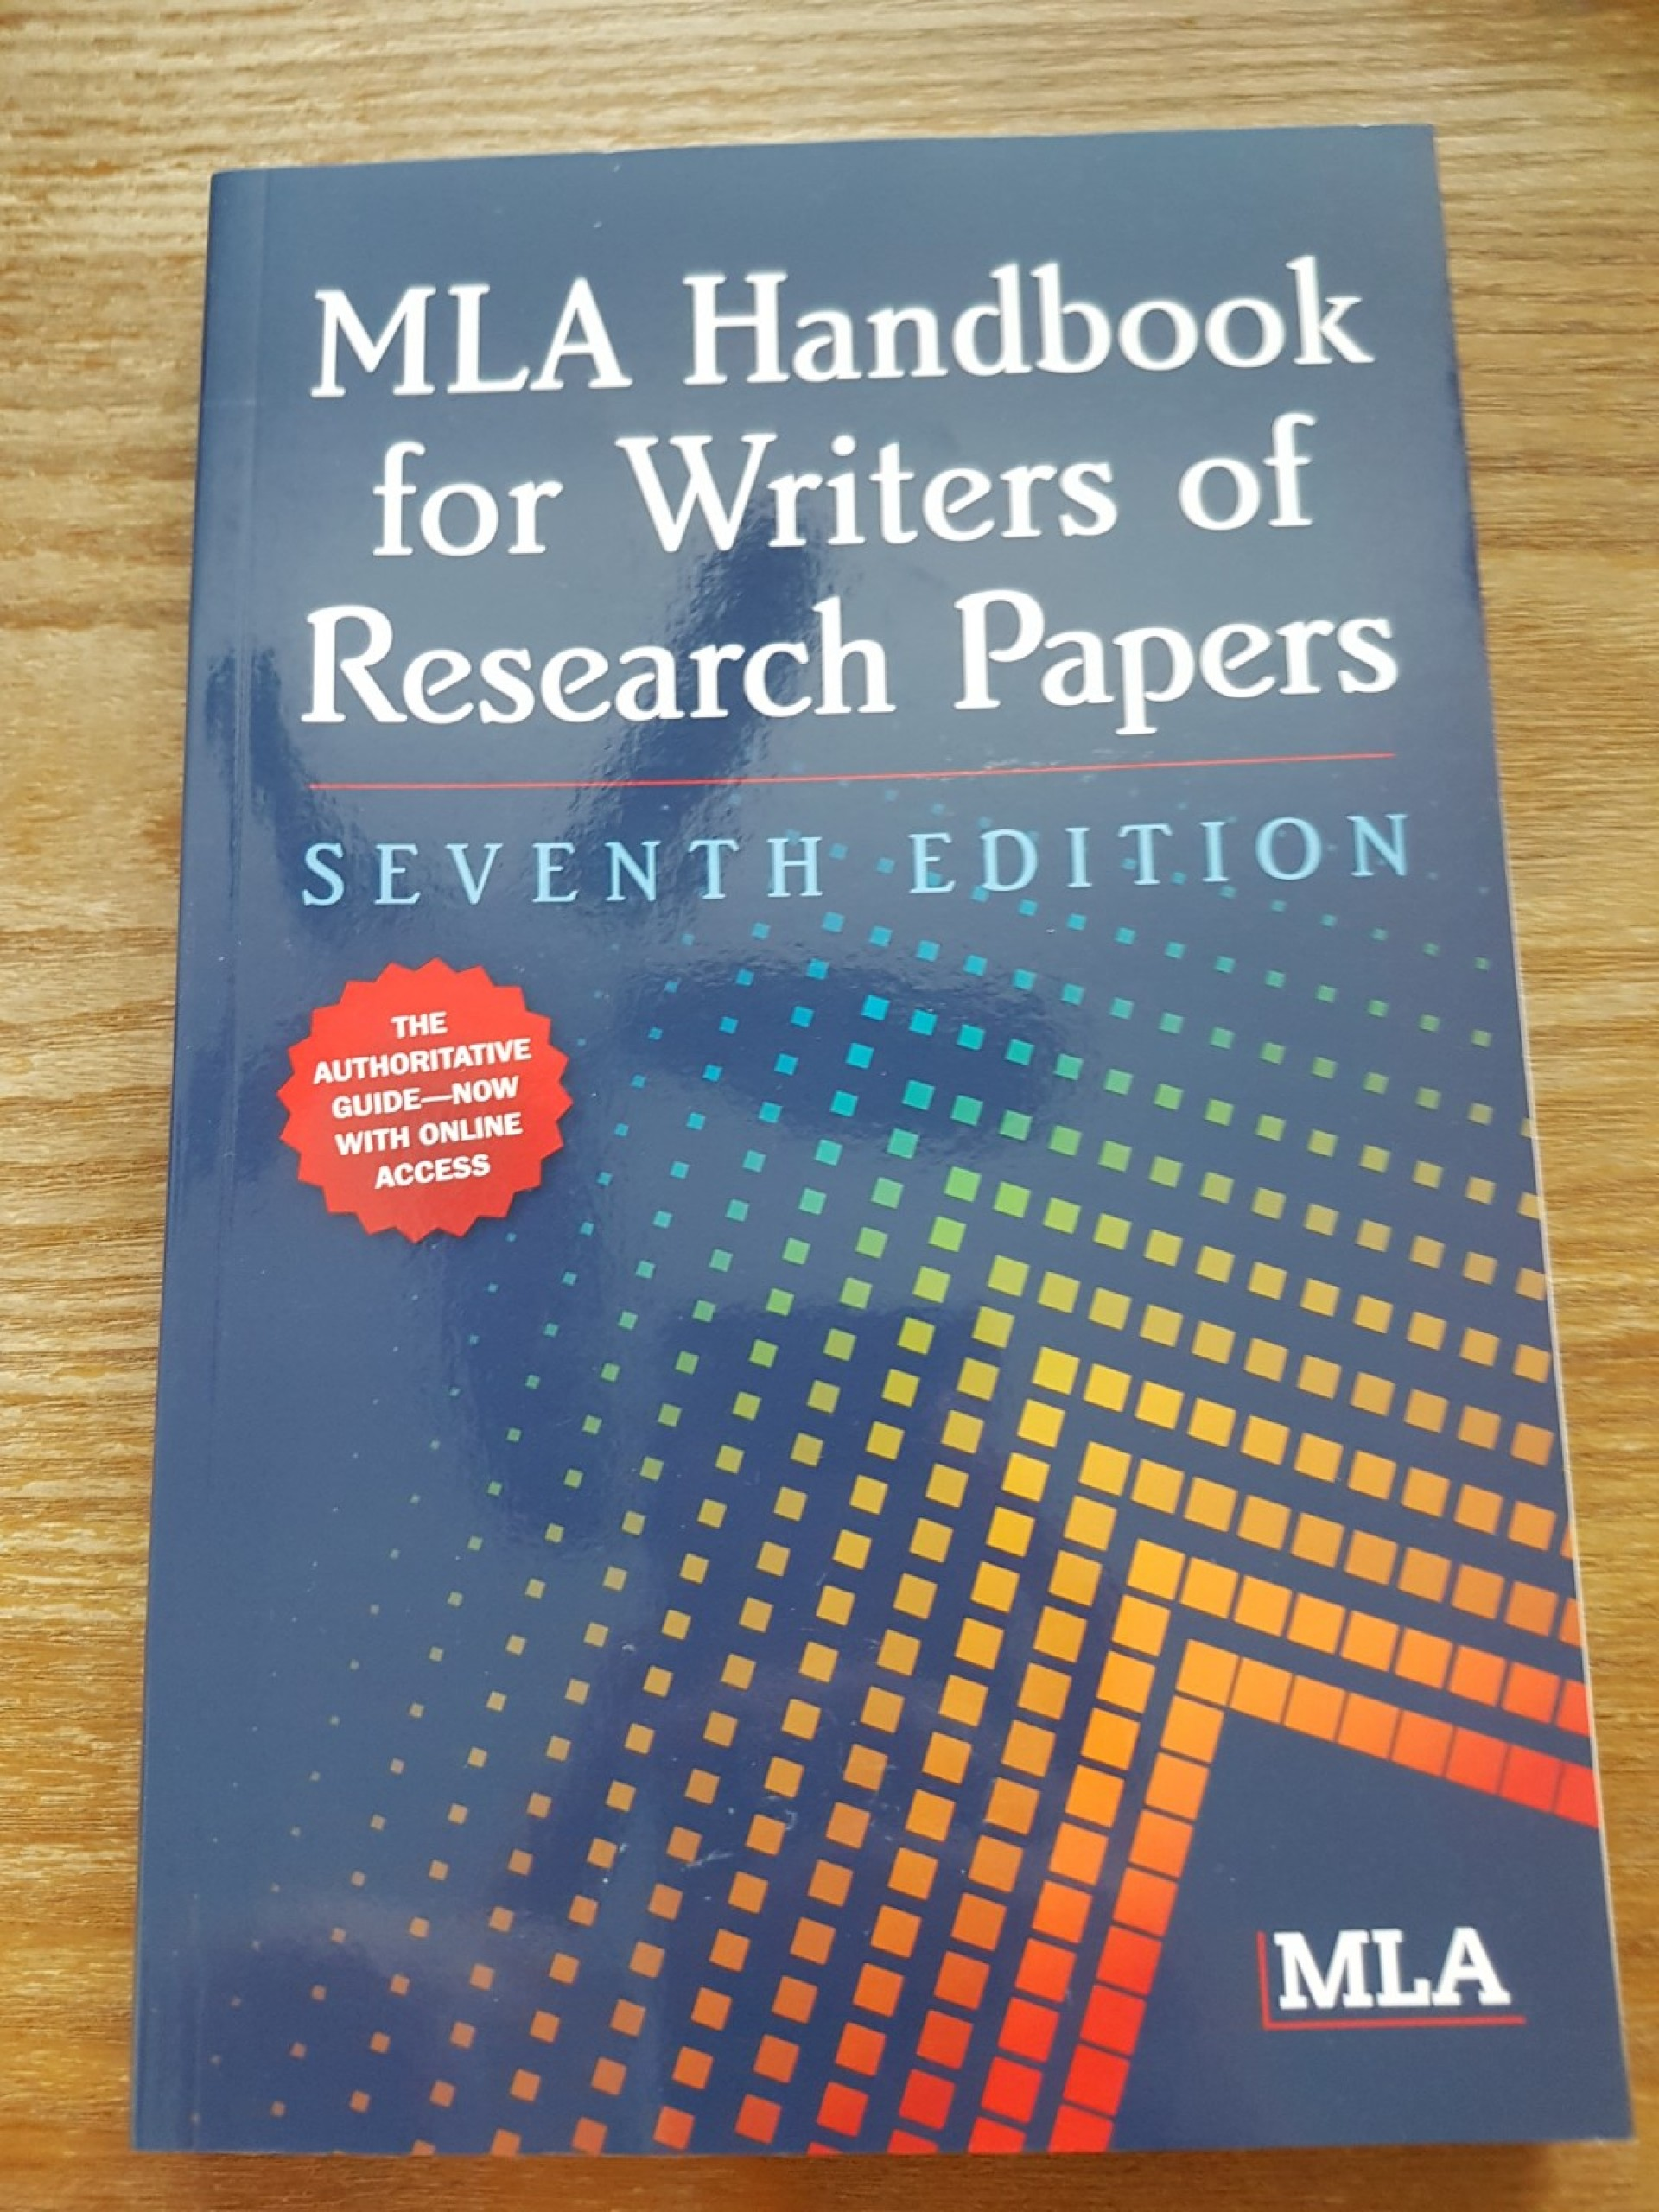 003 Bn Mla Handbook For Writers Of Research Papers 7th 1526886966 Db26cb23 Paper Fearsome Edition Pdf Free 2009 Summary 1920